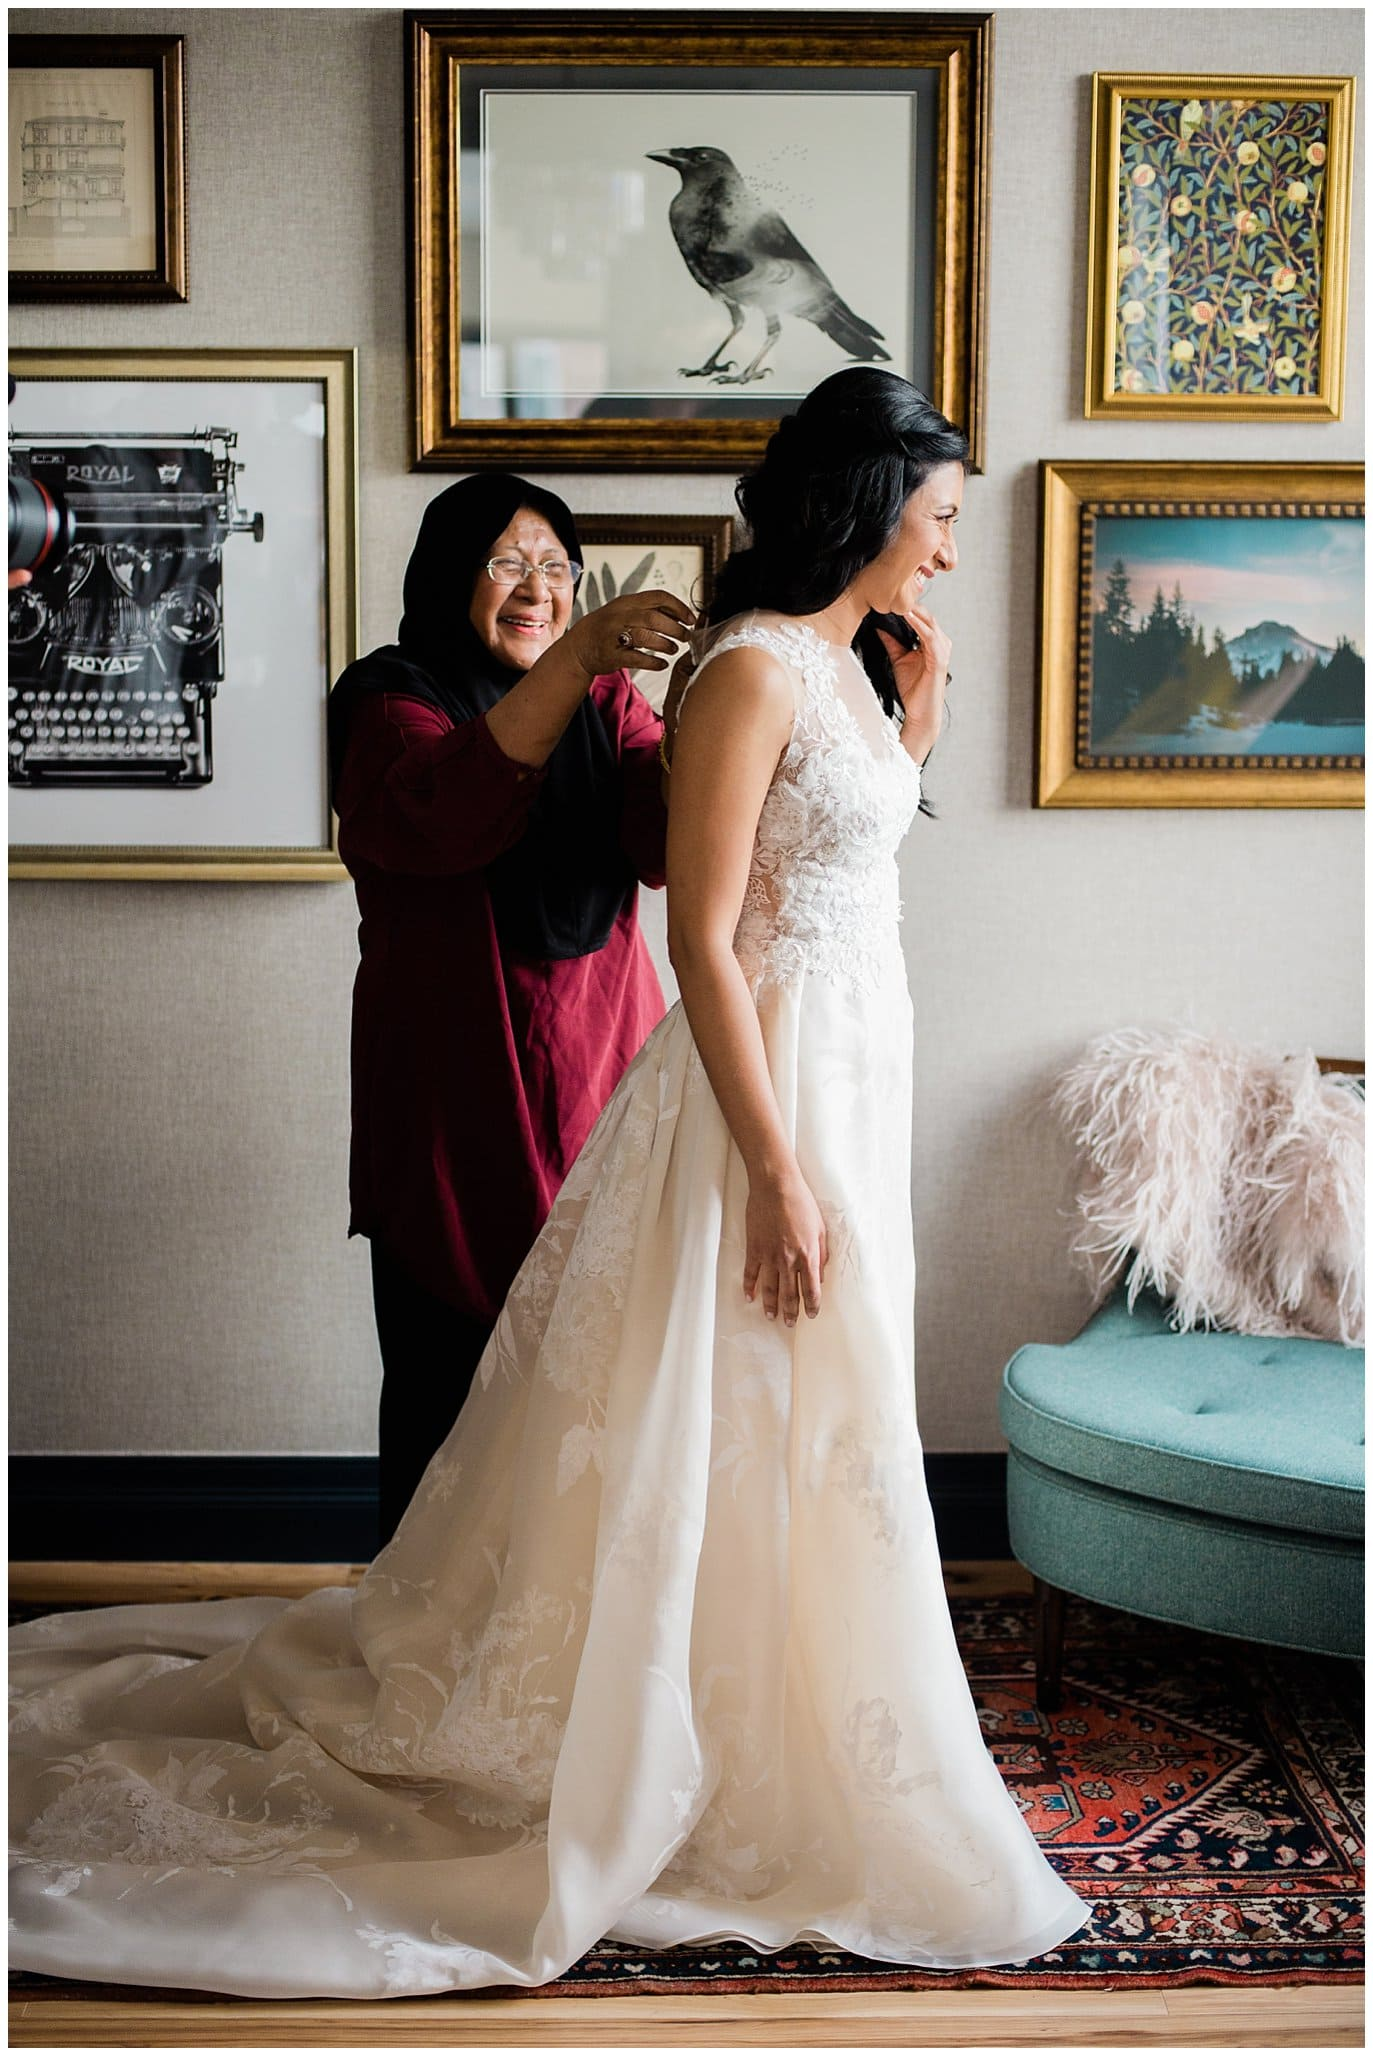 bride getting dresses at Denver city wedding photo by Blanc Wedding Photographer Jennie Crate